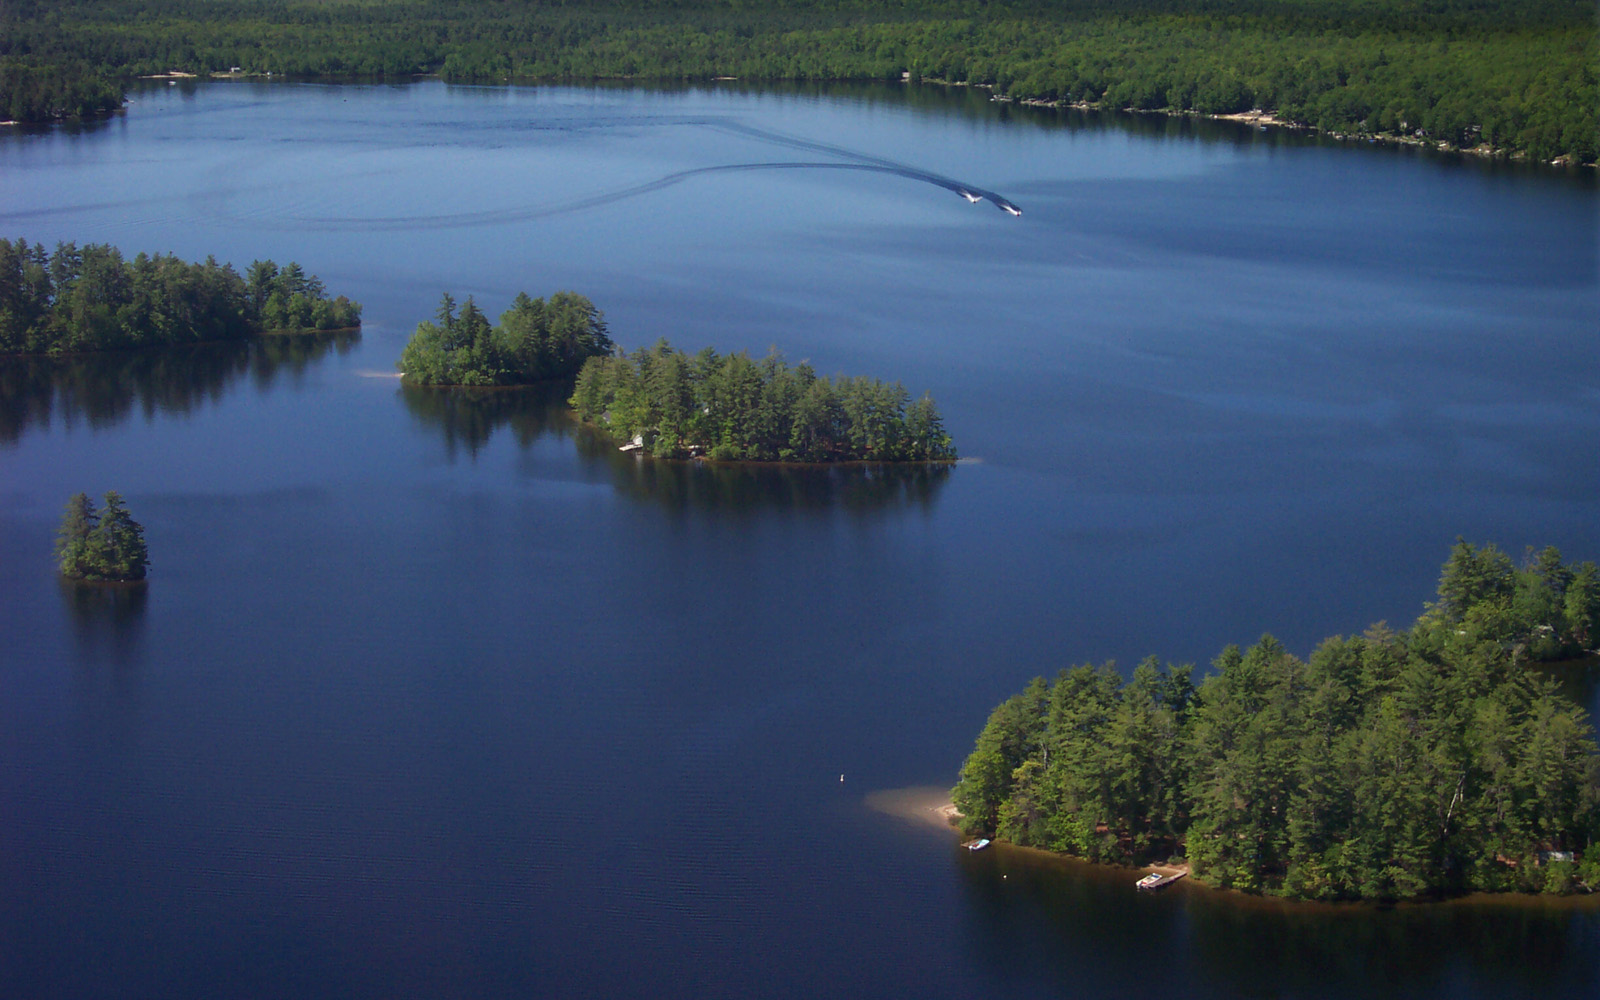 Aerial photo of lake